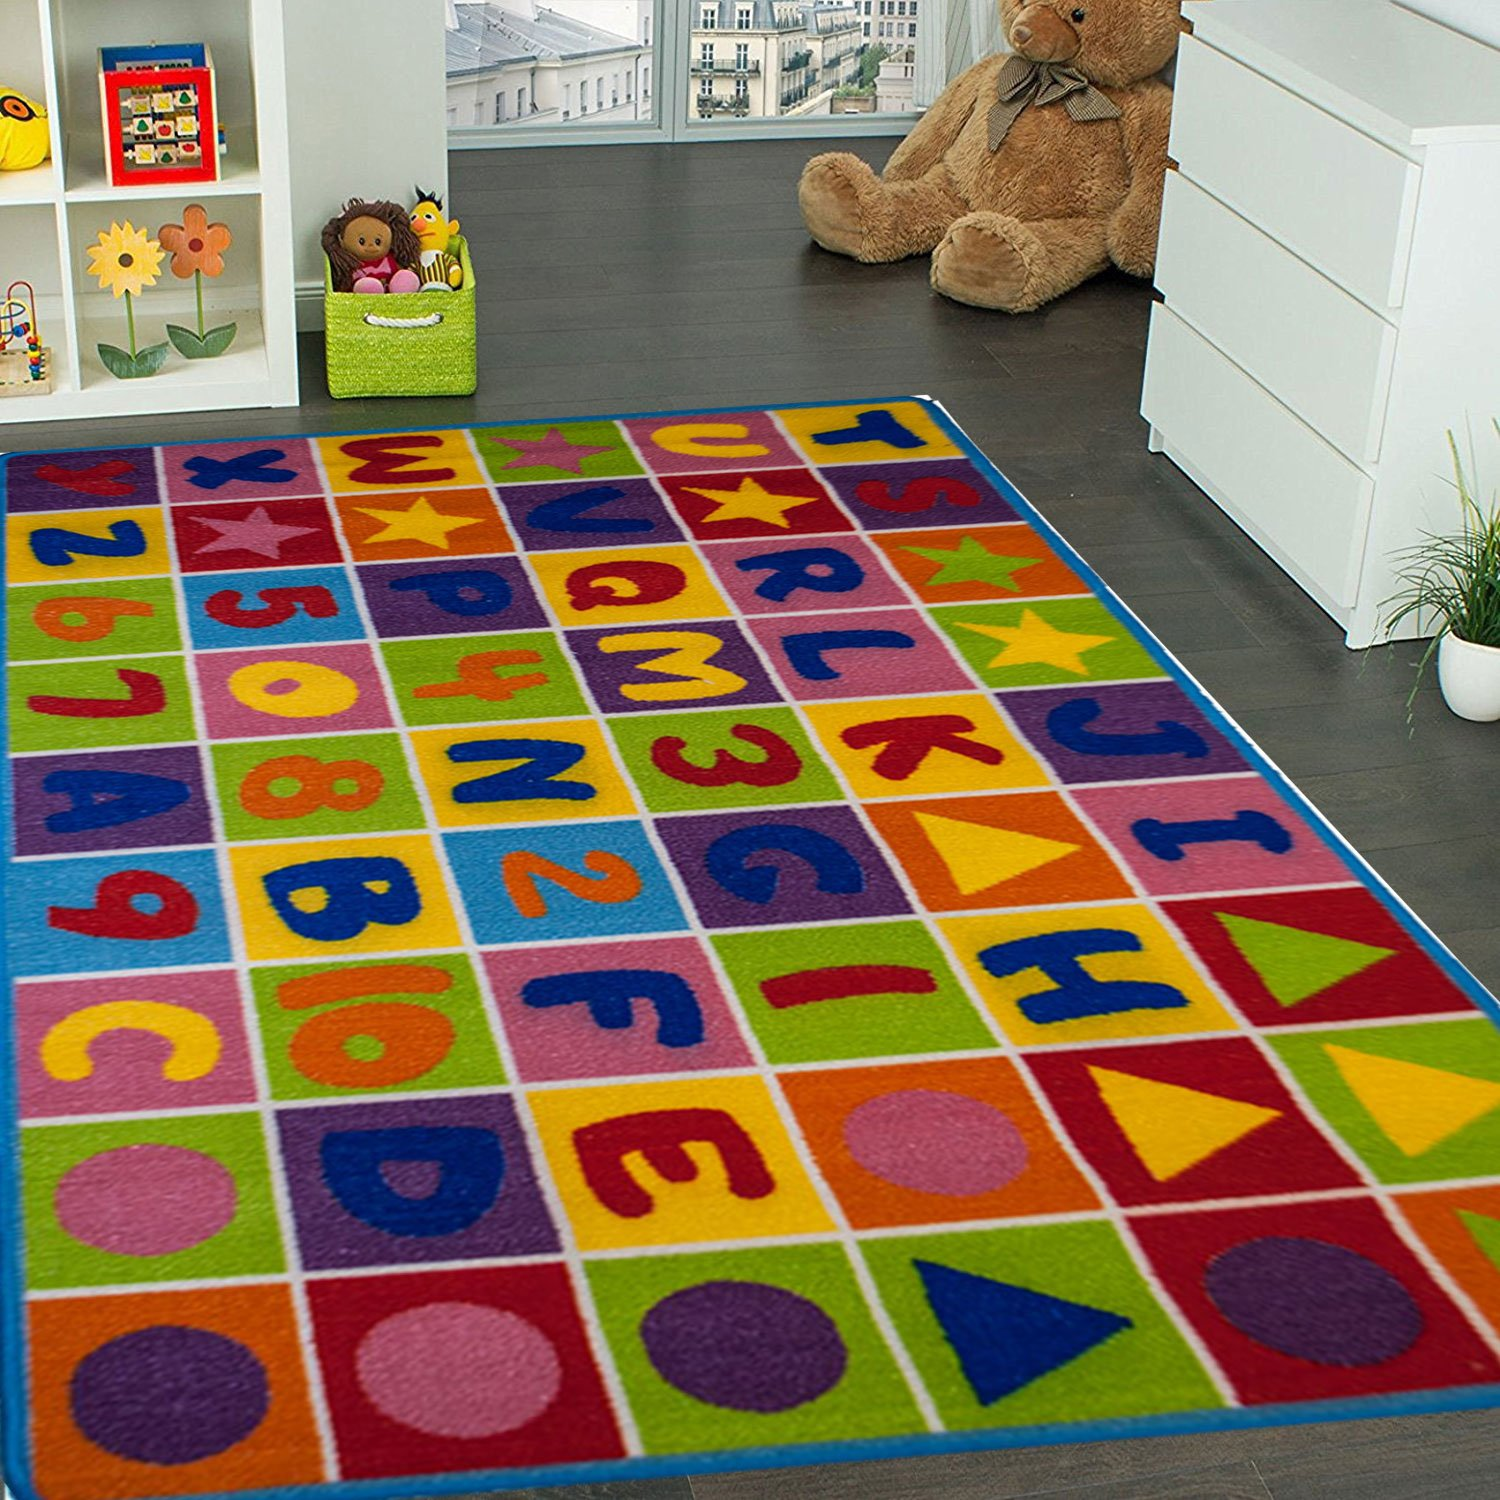 Kids Rug Numbers and Letters Area Rug 5' x 7' Children Area Rug for Playroom & Nursery - Non Skid Gel Backing (59'' x 82'')